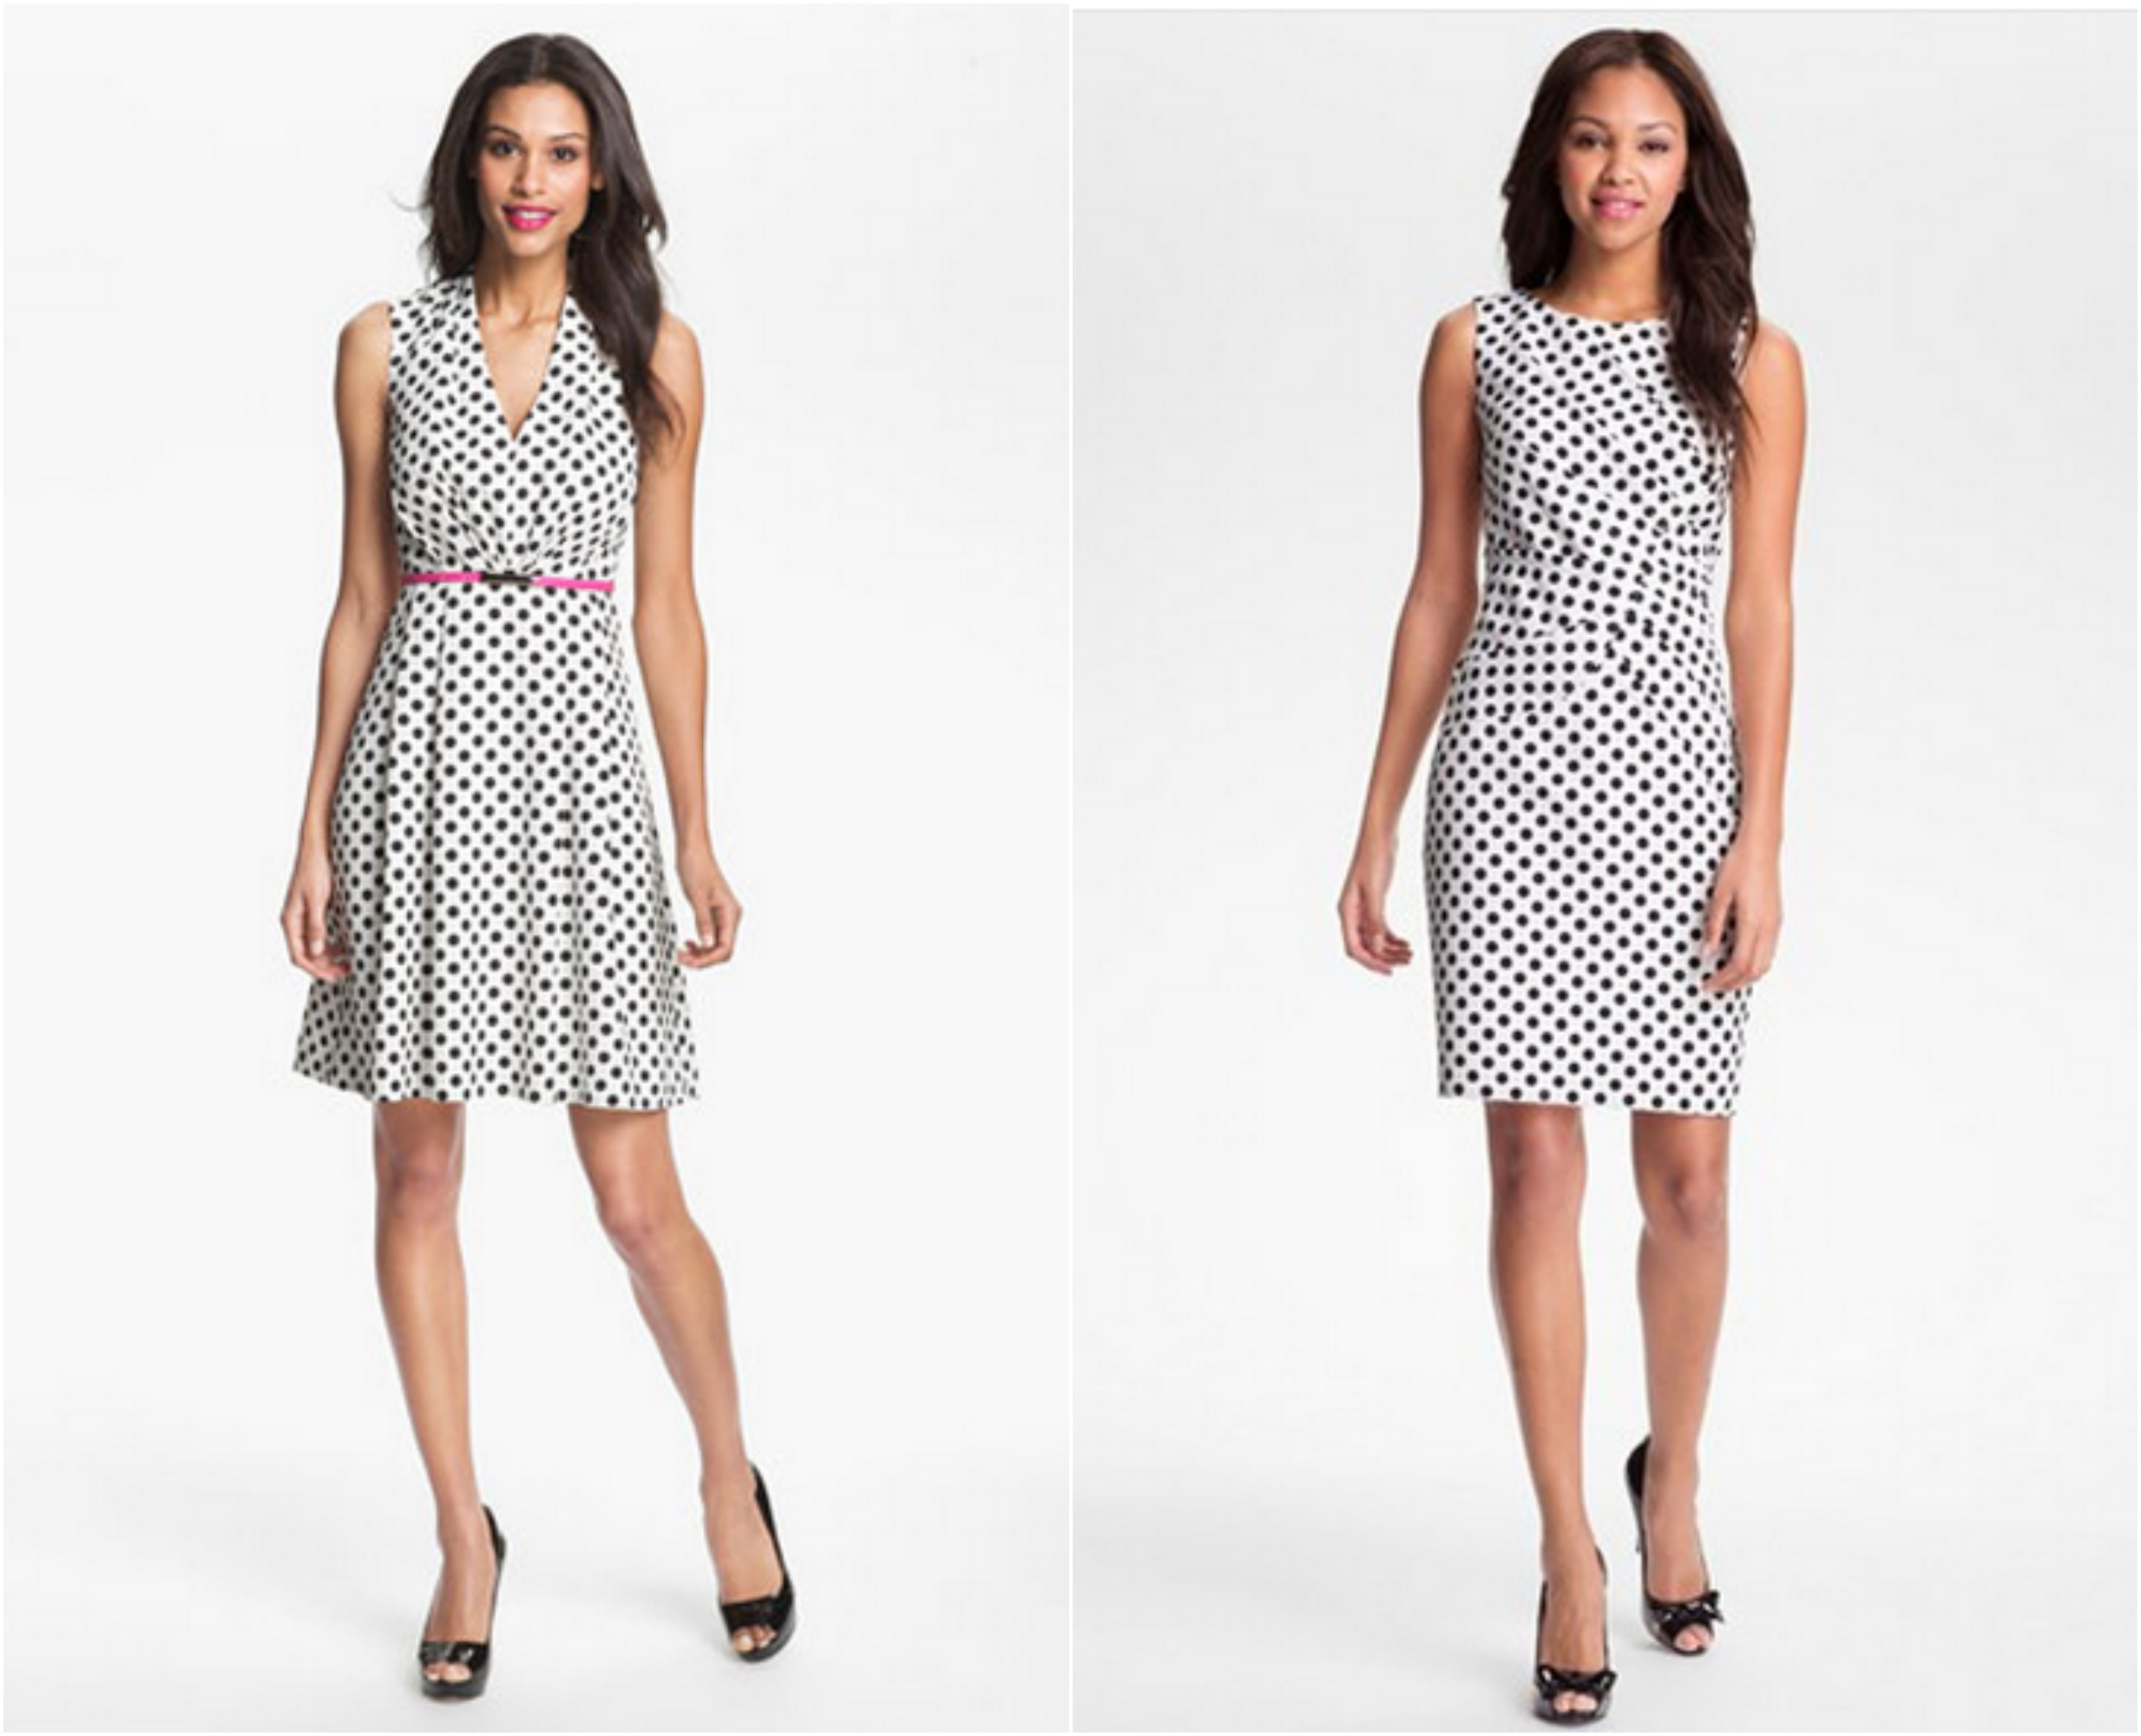 Polka dot dresses come in a variety of styles. From short, casual frocks to knee-length party and cocktail dresses, there's something for every preference. The sizes of .